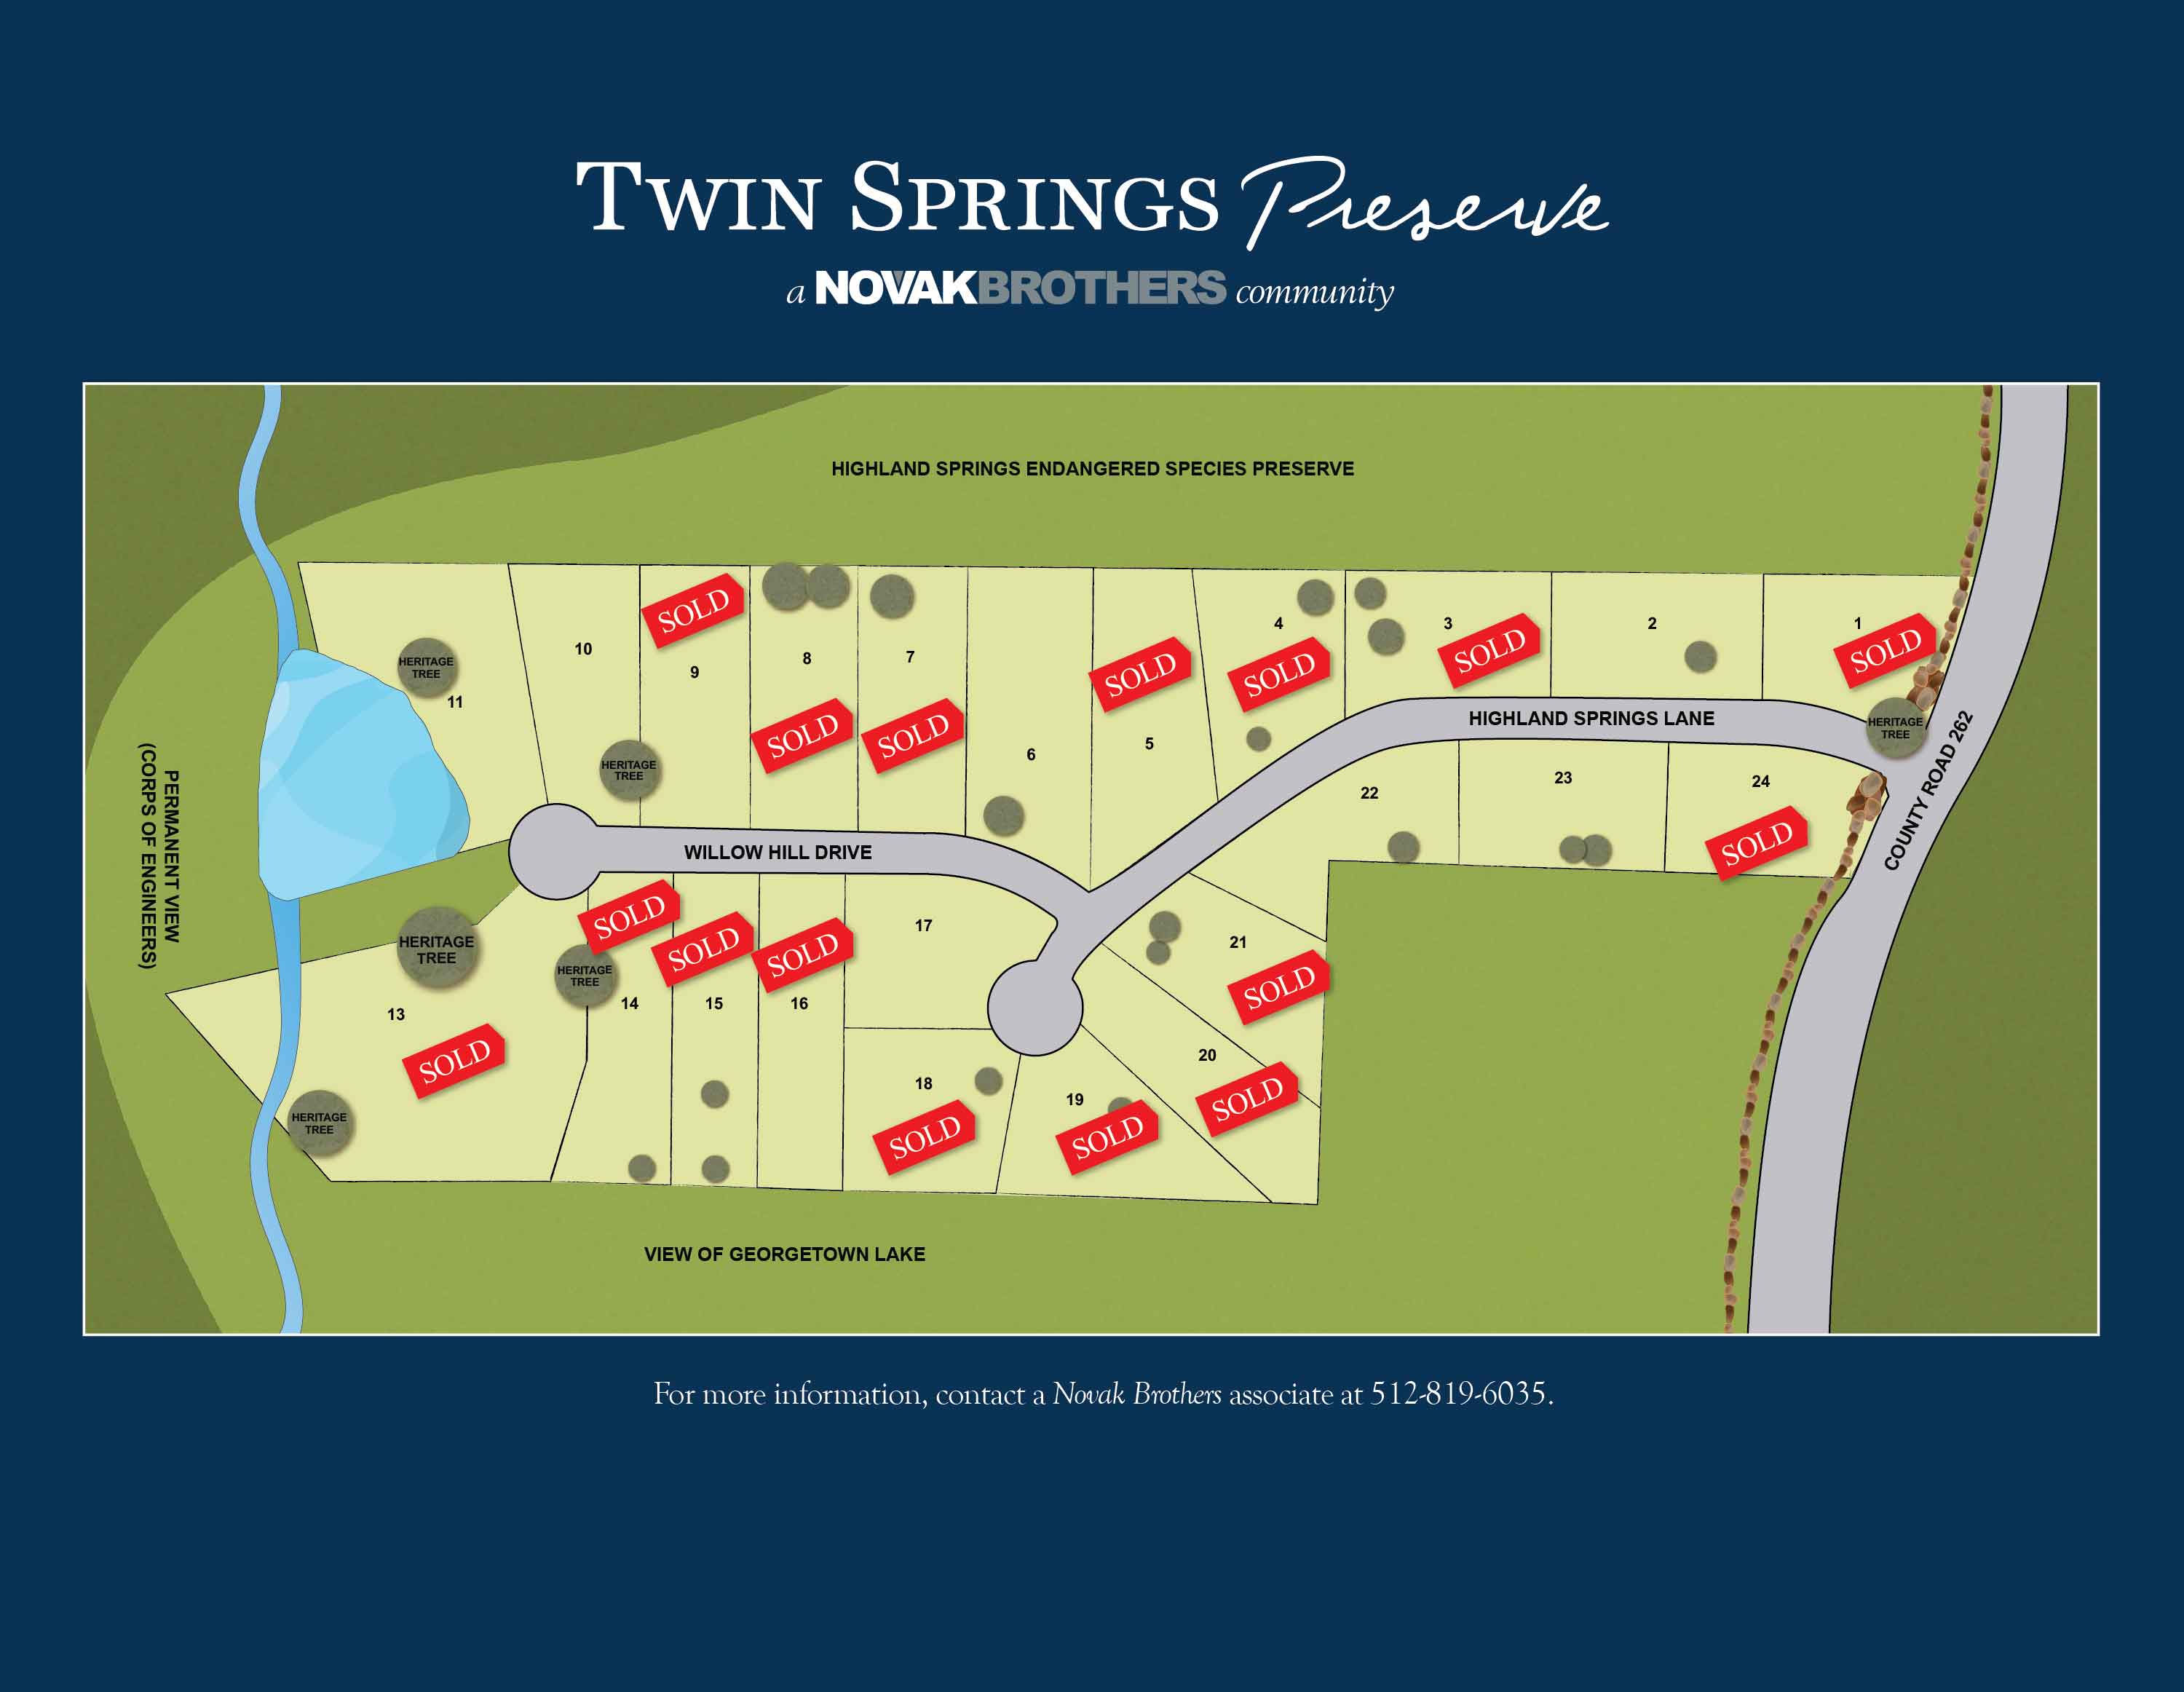 Twin Springs Preserve Masterplan - a Novak Brothers Community